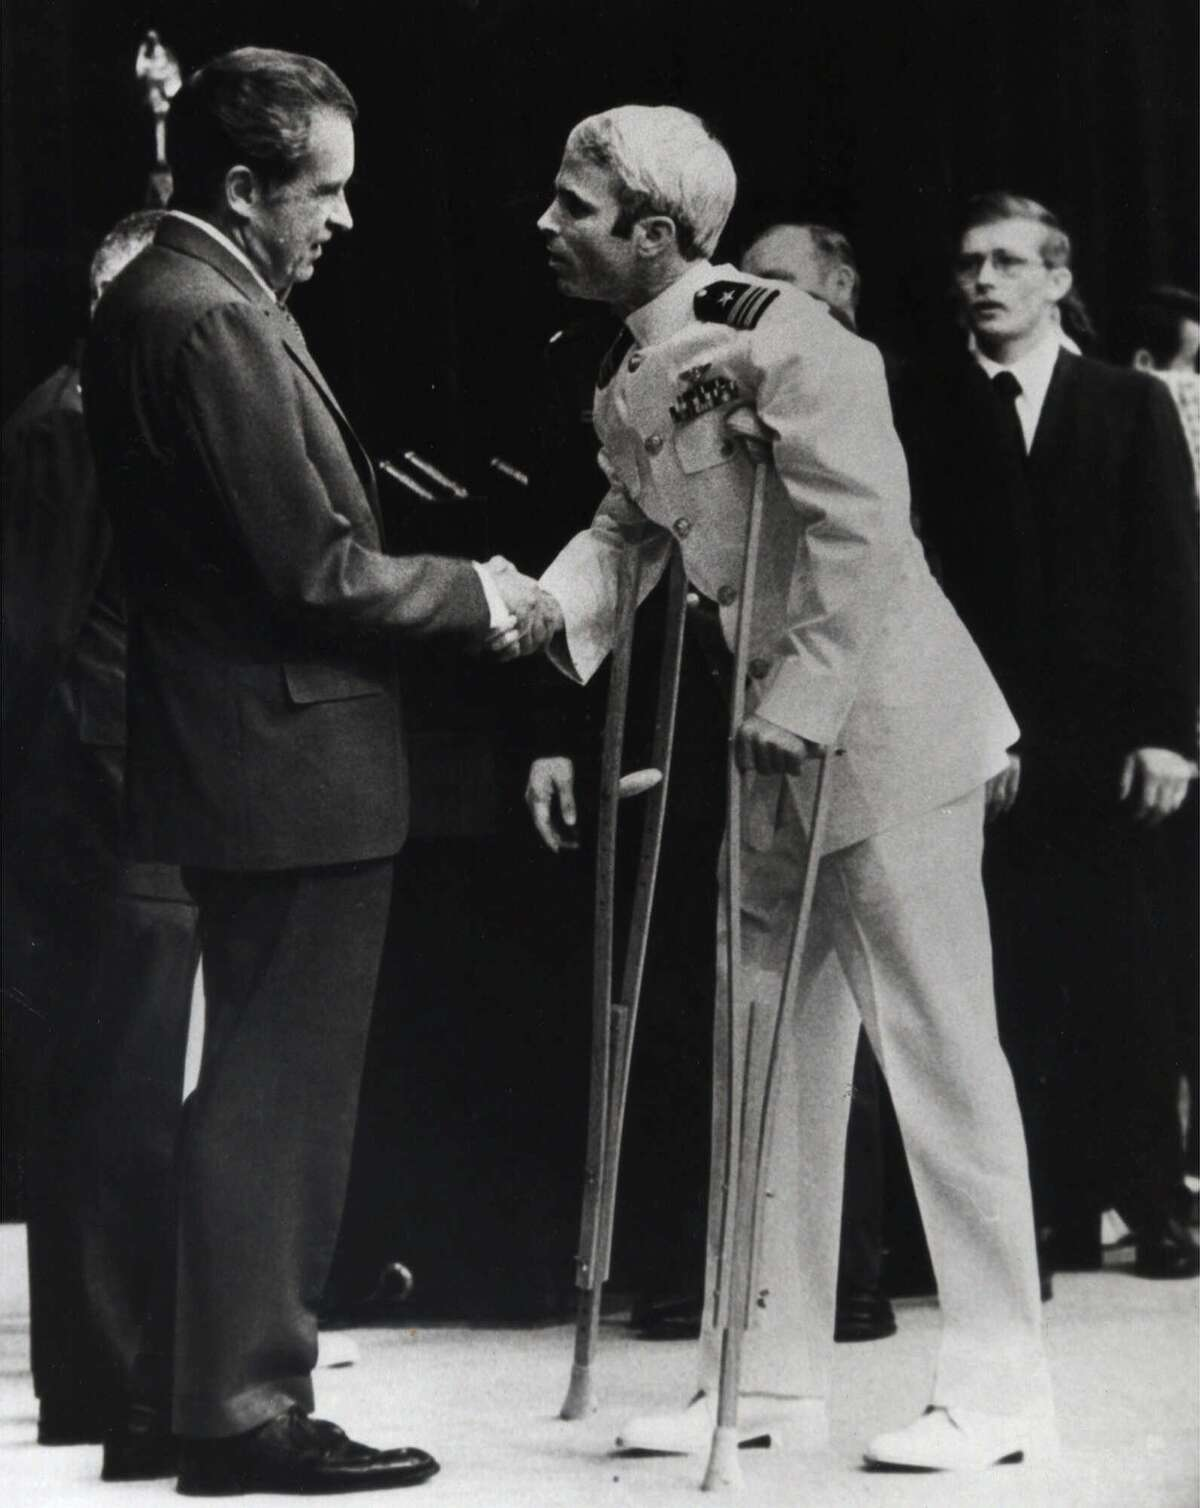 John McCain is greeted by President Richard Nixon, left, in Washington in the spring of 1973 after being released following more than five years in a Vietnamese prisoner of war camp. (AP Photo/file)